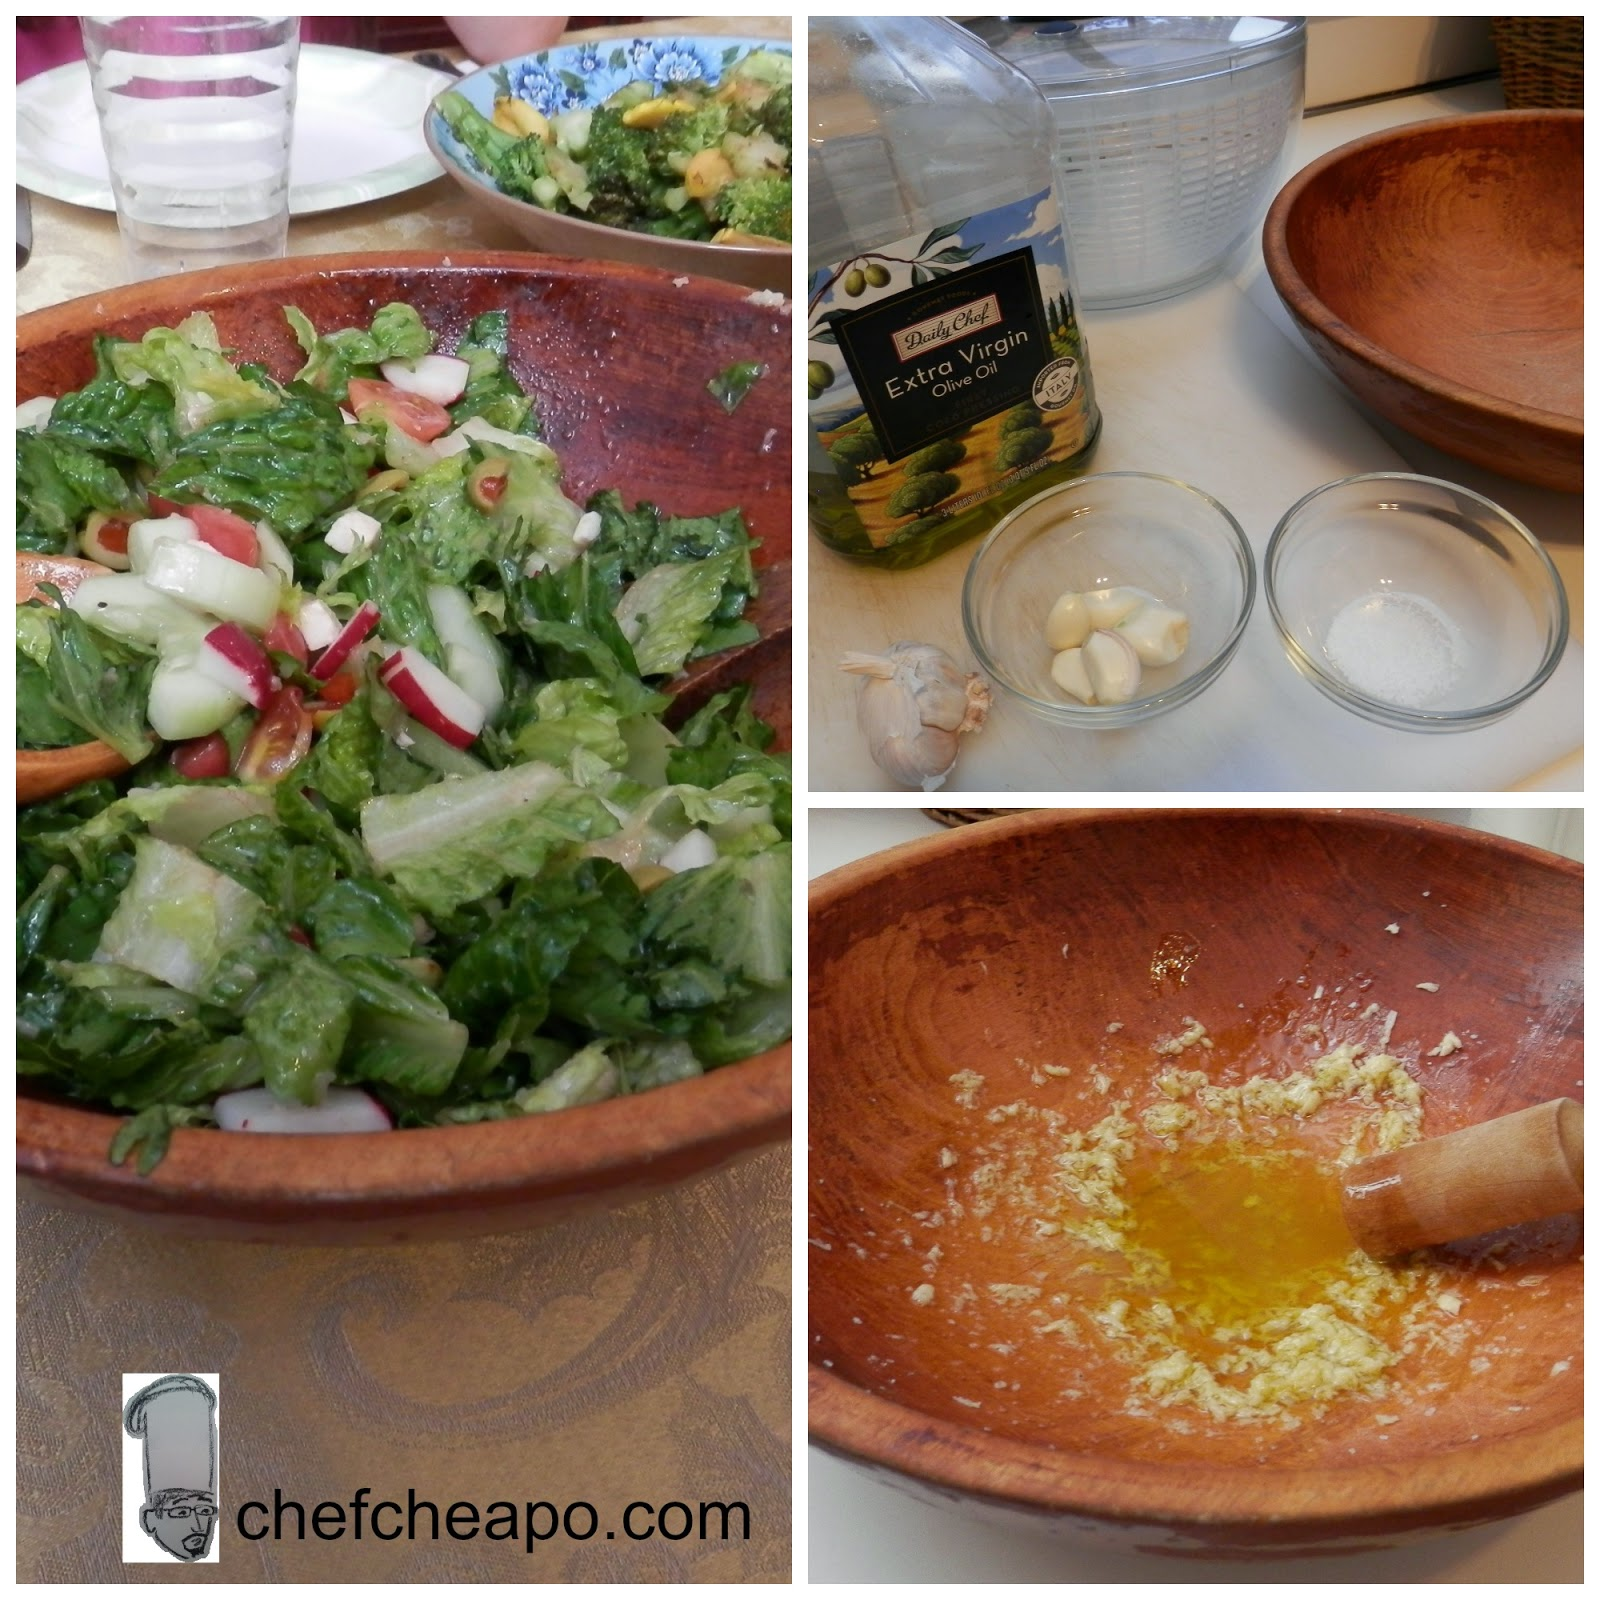 homemade all-natural garlic and olive oil dressing for salad